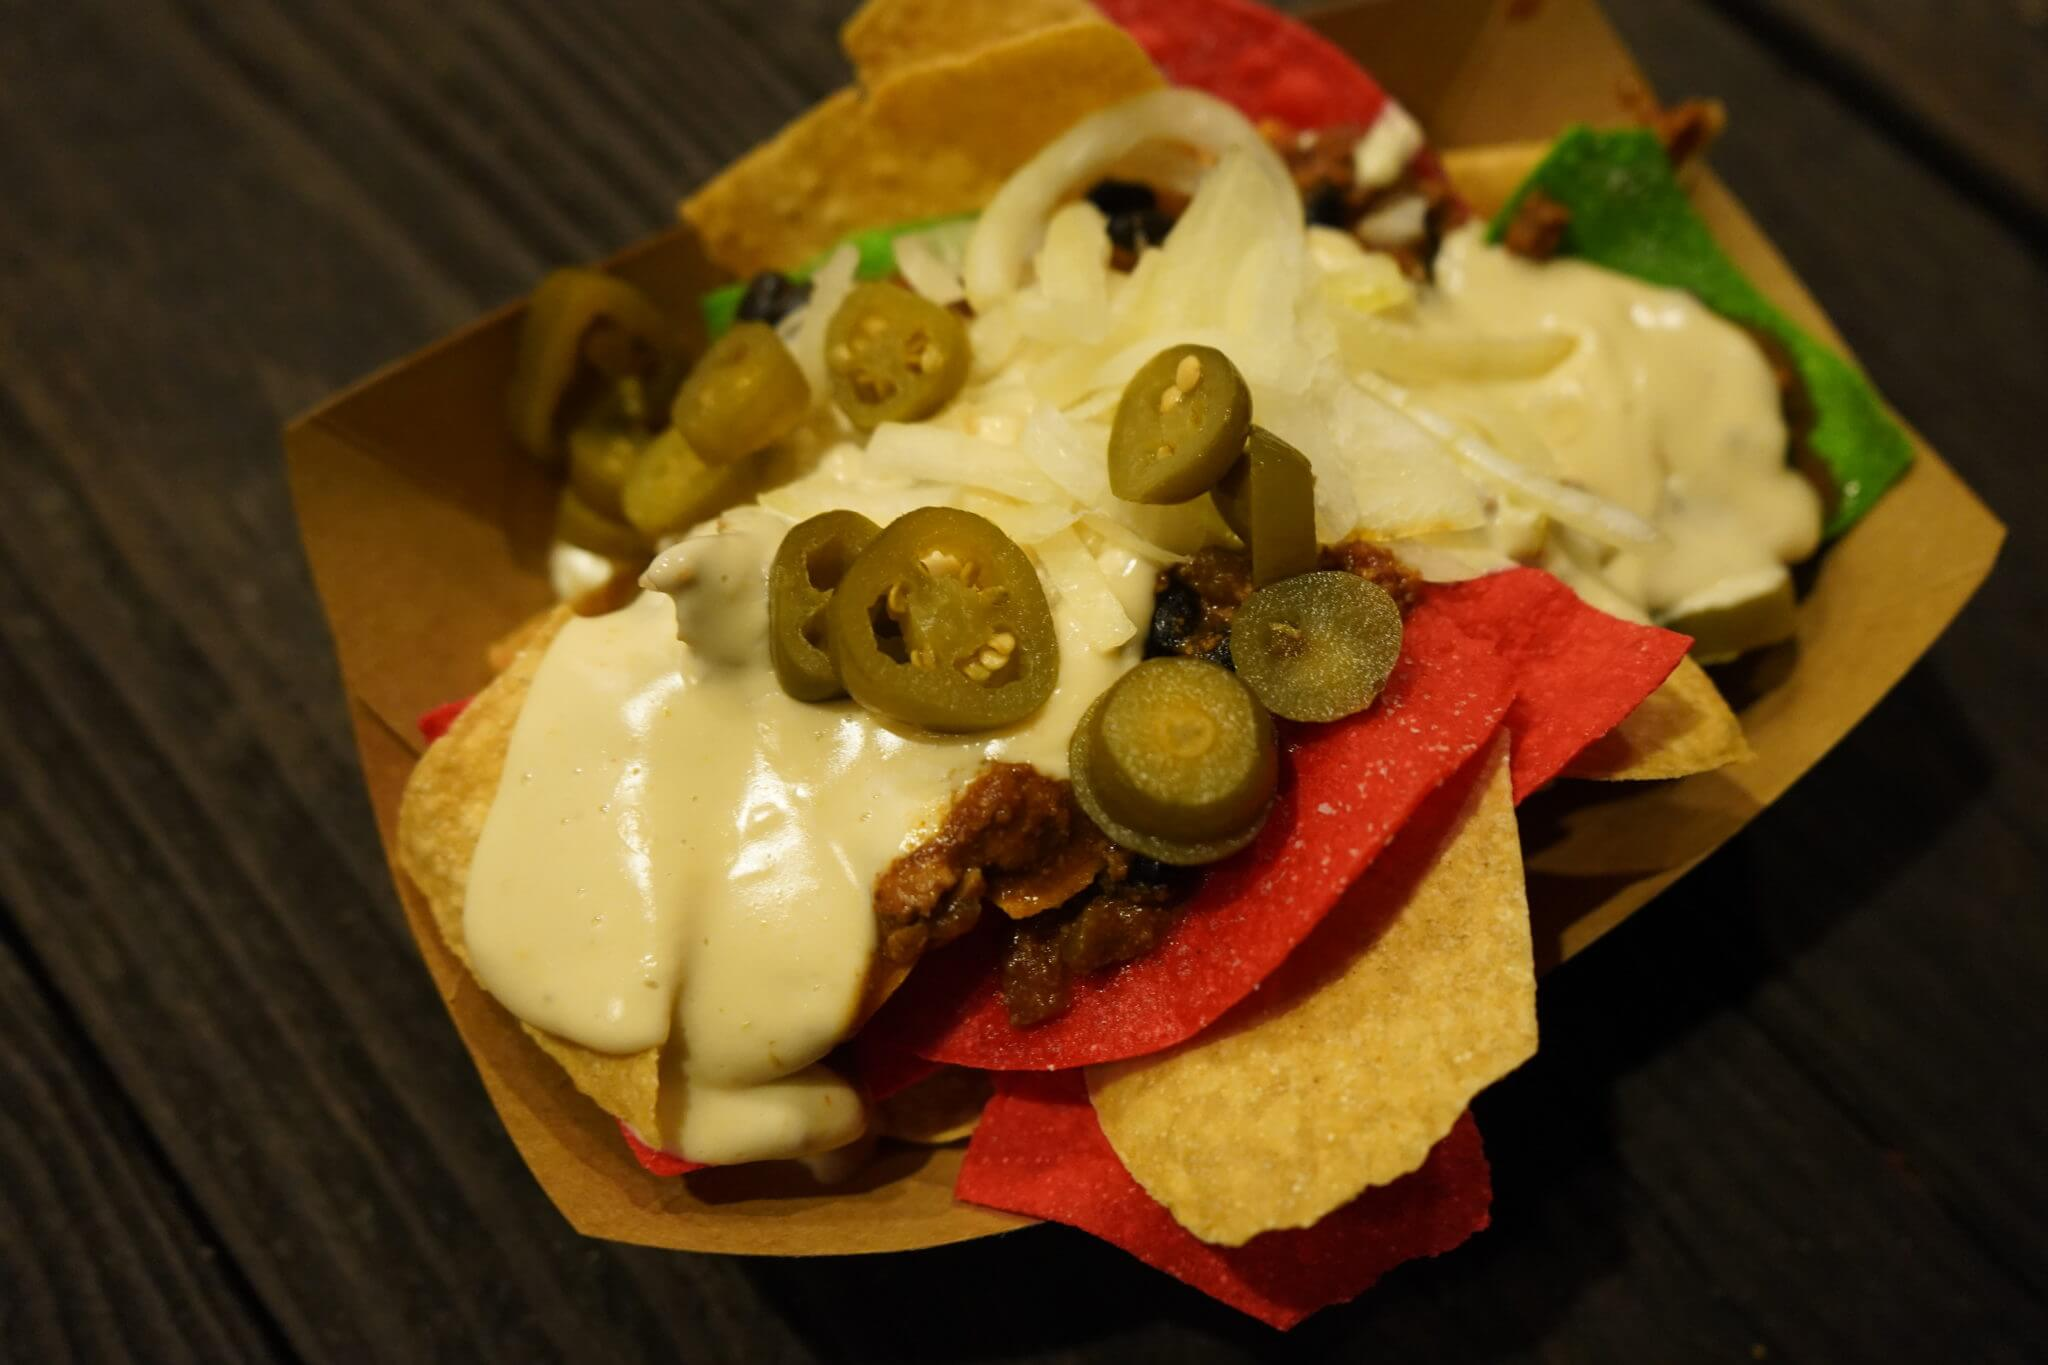 Pecos Bill - Feliz Navidad Nachos at Mickey's Very Merry Christmas Party in Disney World